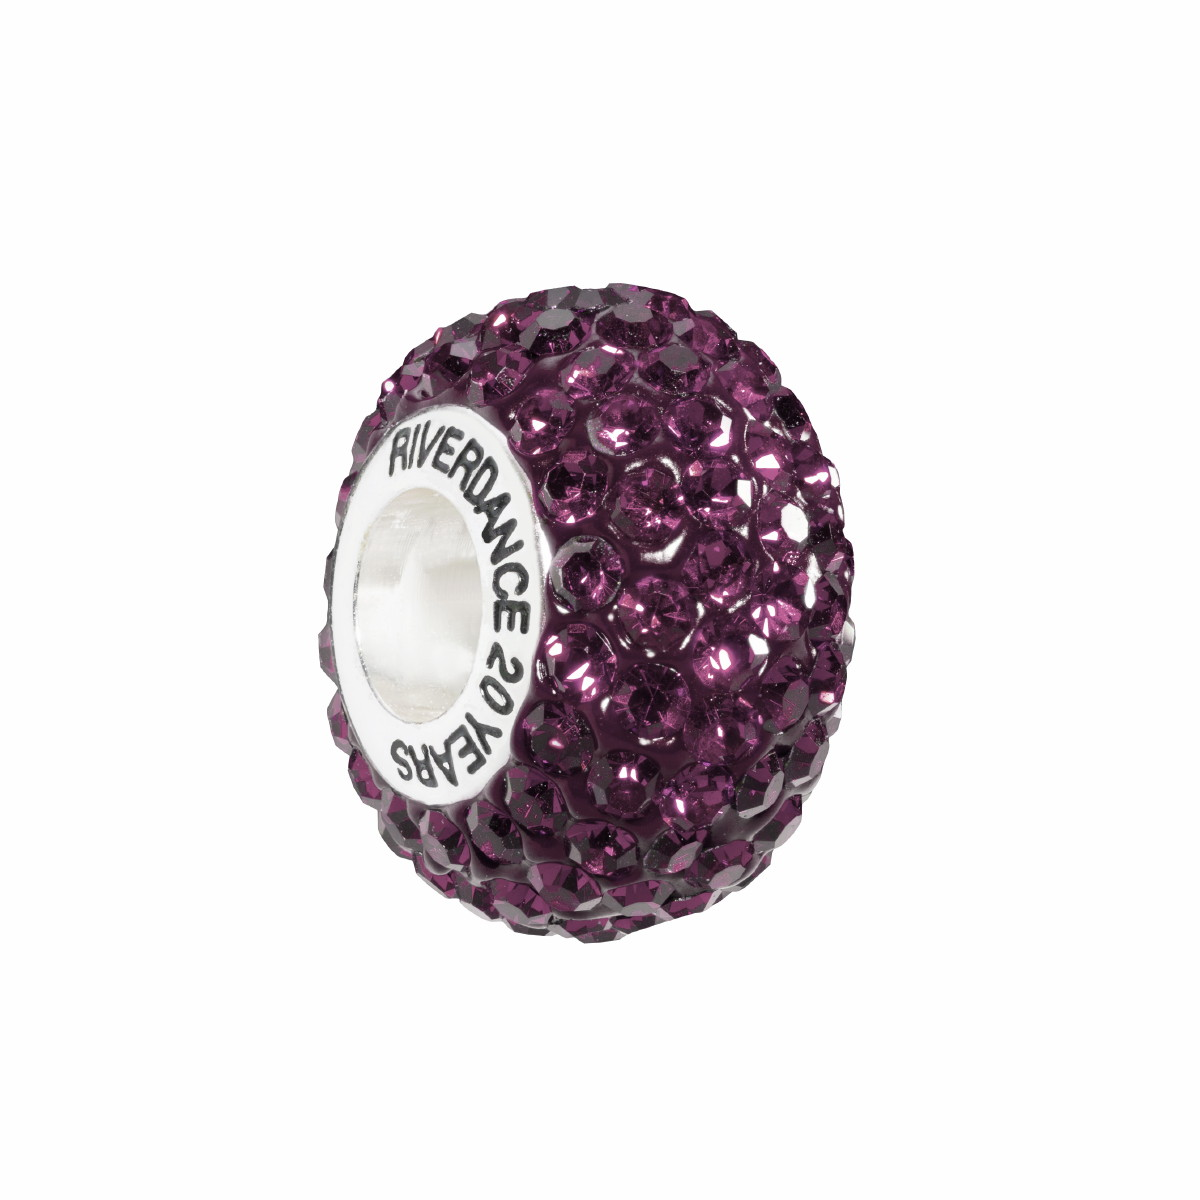 Official Riverdance20 Crystal Encrusted Bead - Purple